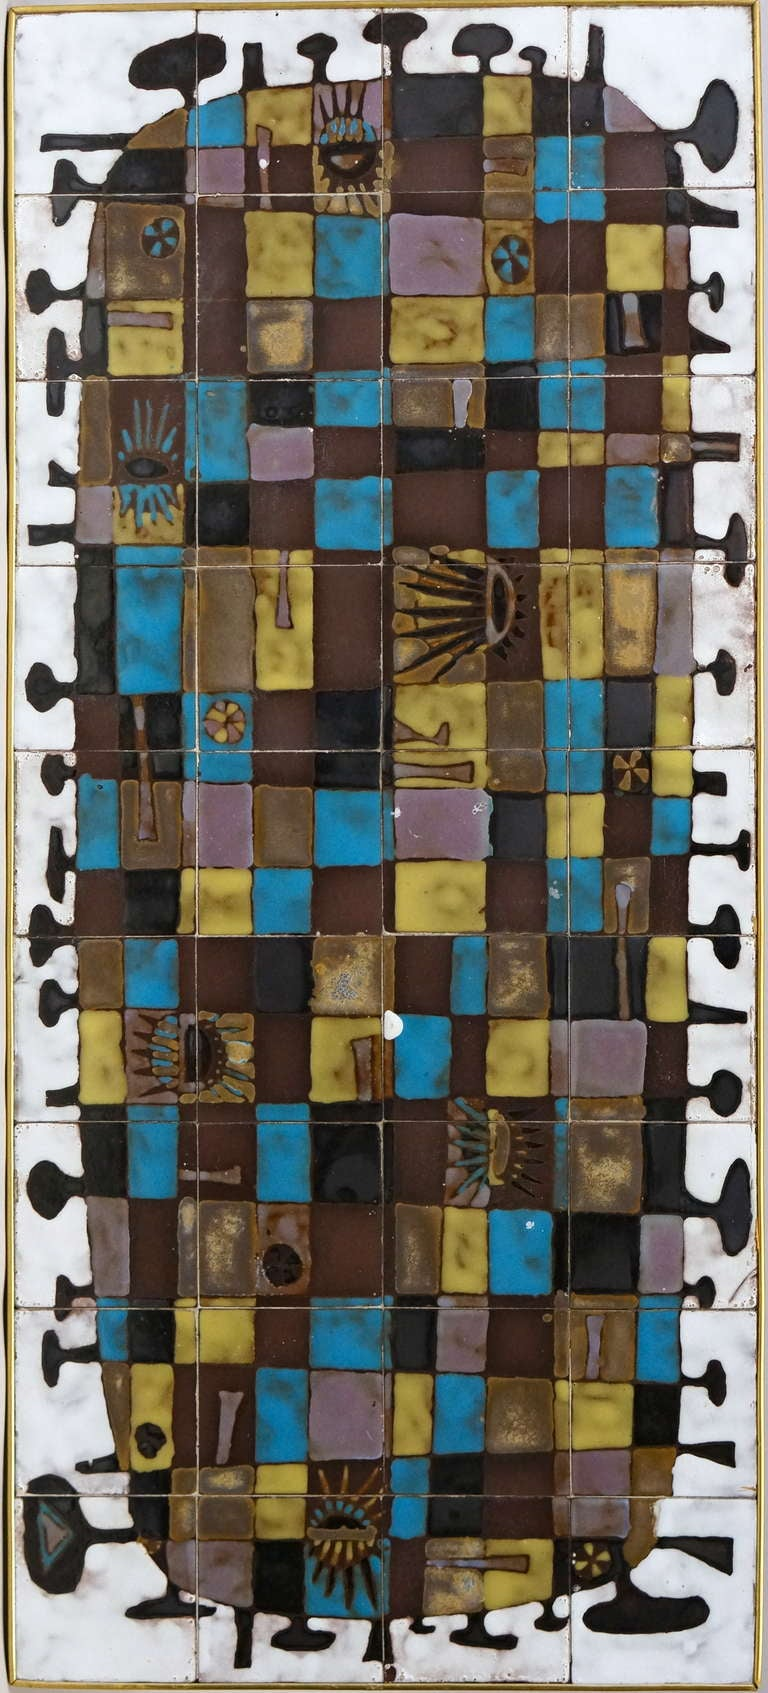 Mid-20th Century Abstract Ceramic Tile Wall Decoration by J Nolf For Sale